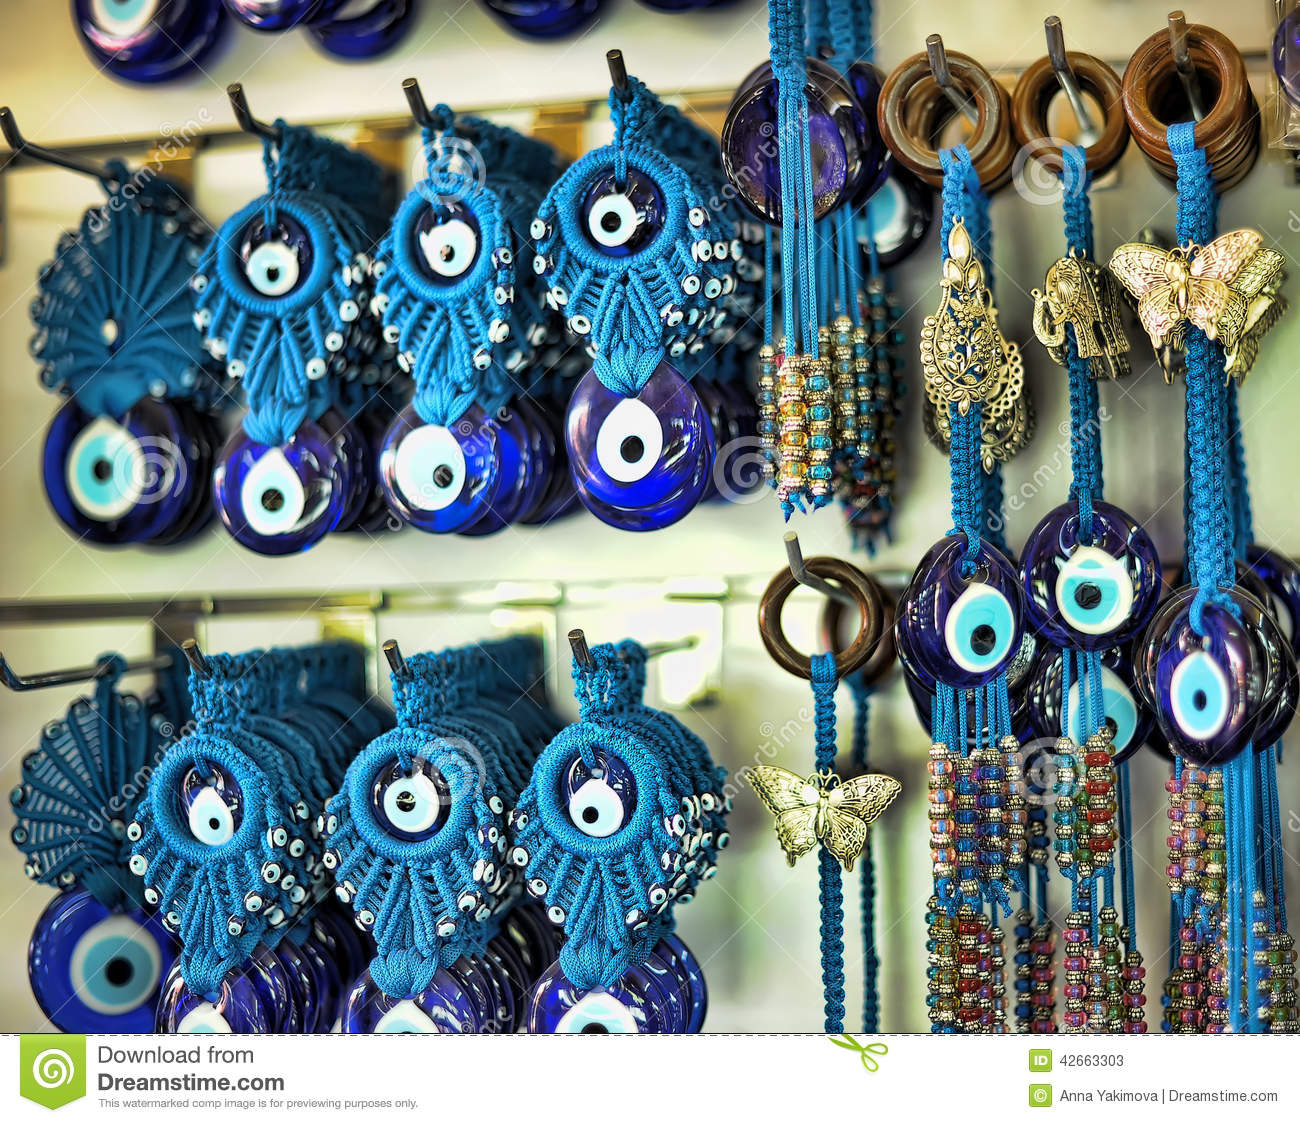 Turkish evil eye stock photos royalty free images a pile of glass evil eye amulet typical turkish souvenirs use to protect against the biocorpaavc